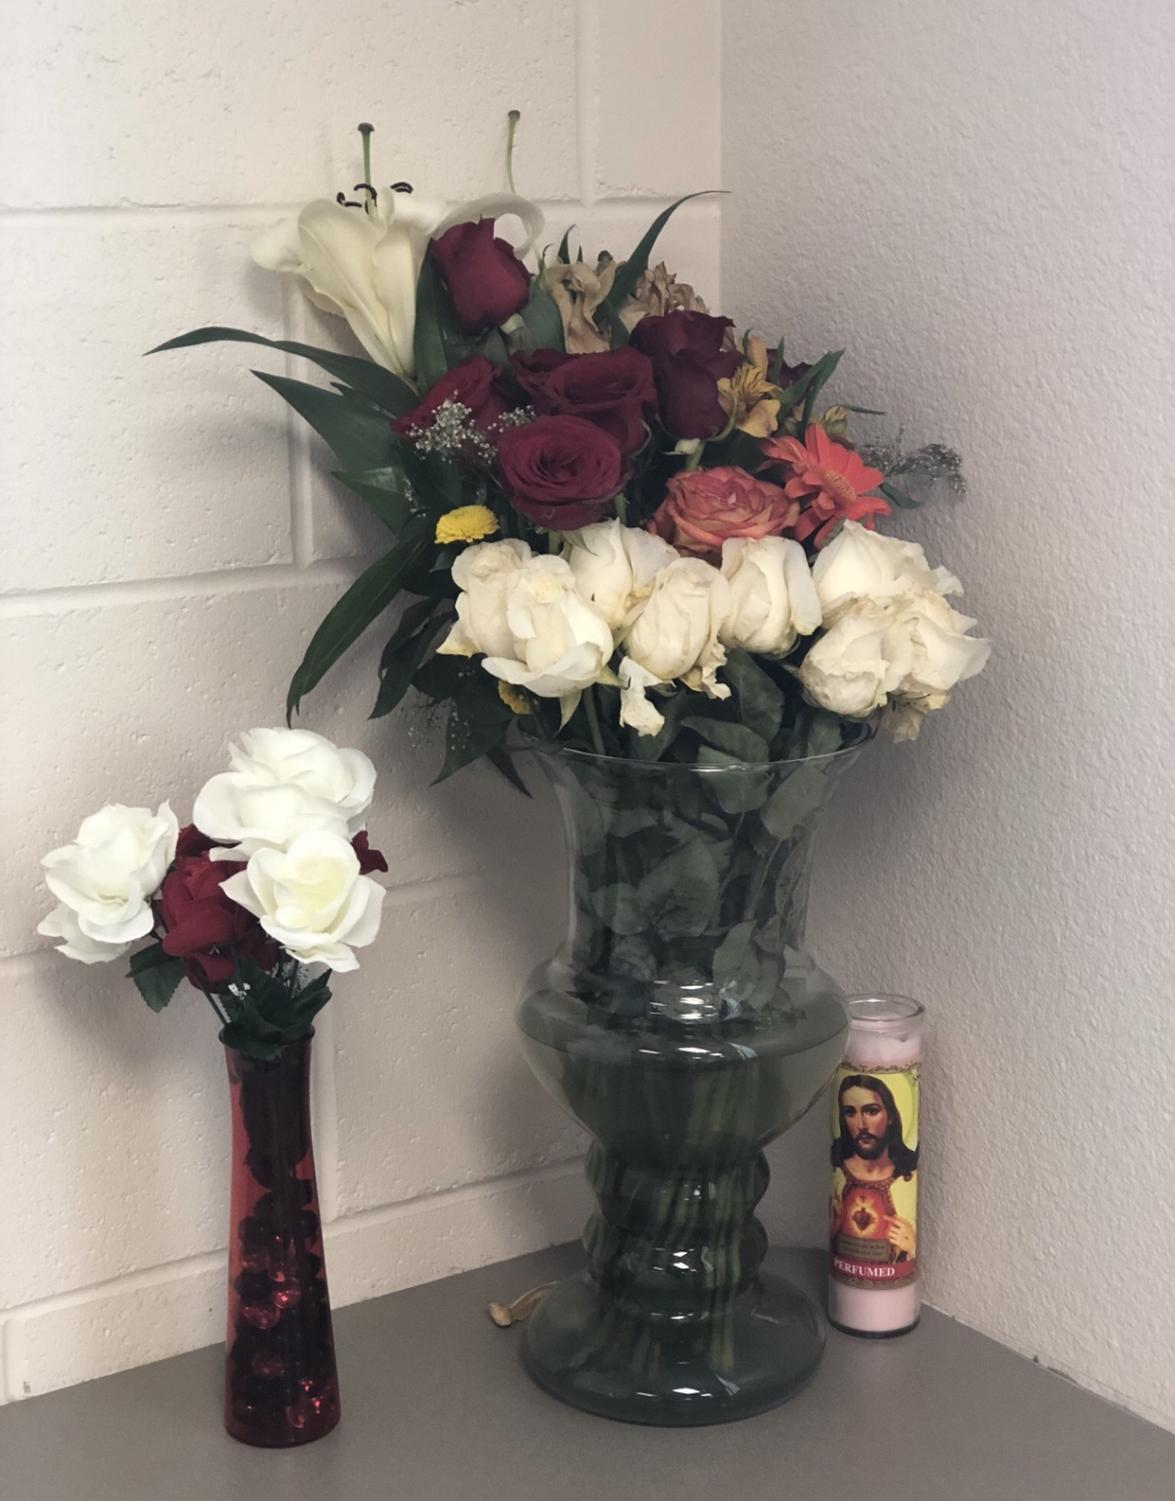 A Bouquet and candle from the vigil